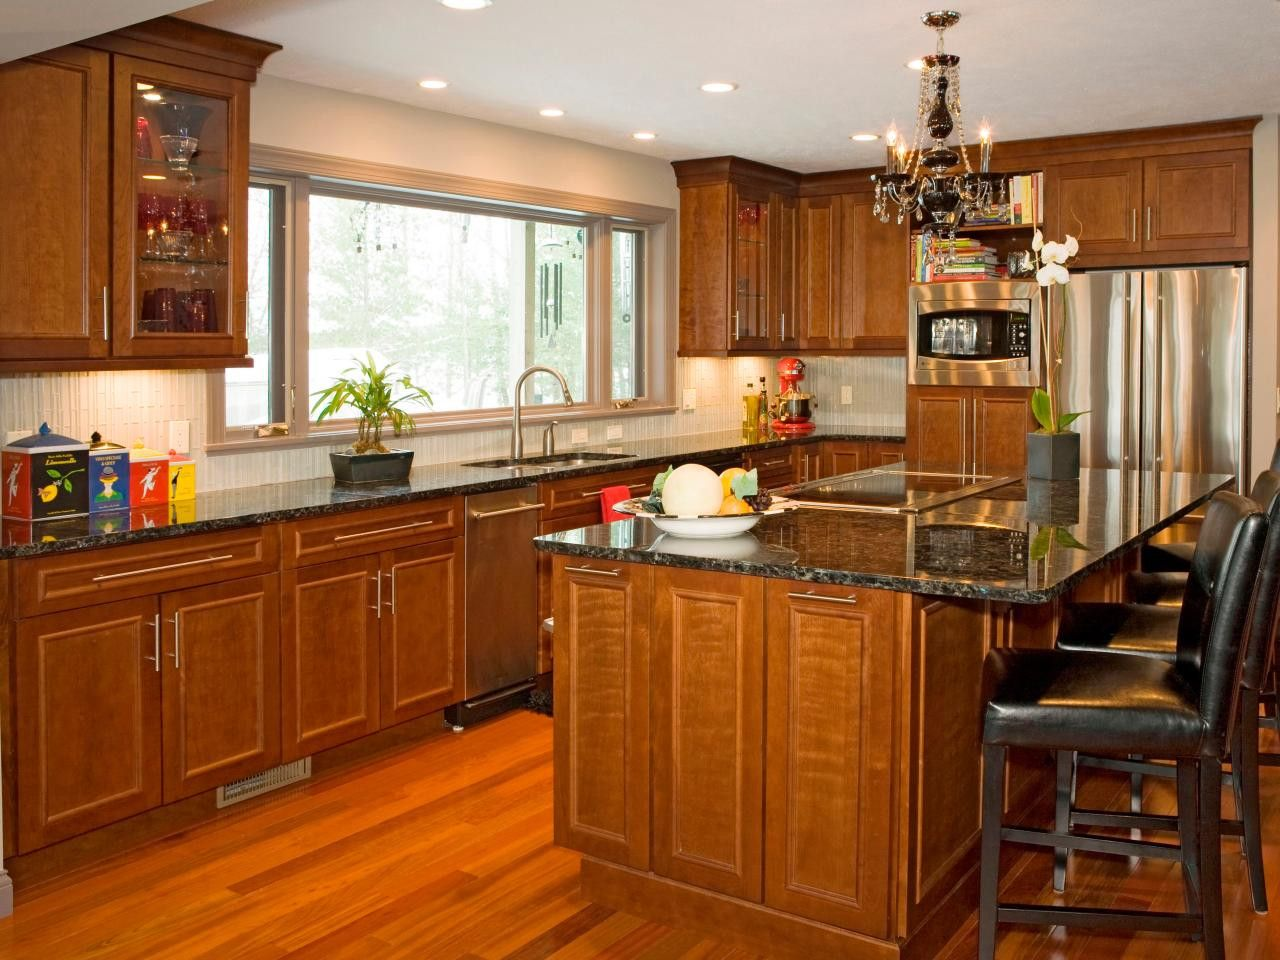 2019 which Wood is Best for Kitchen